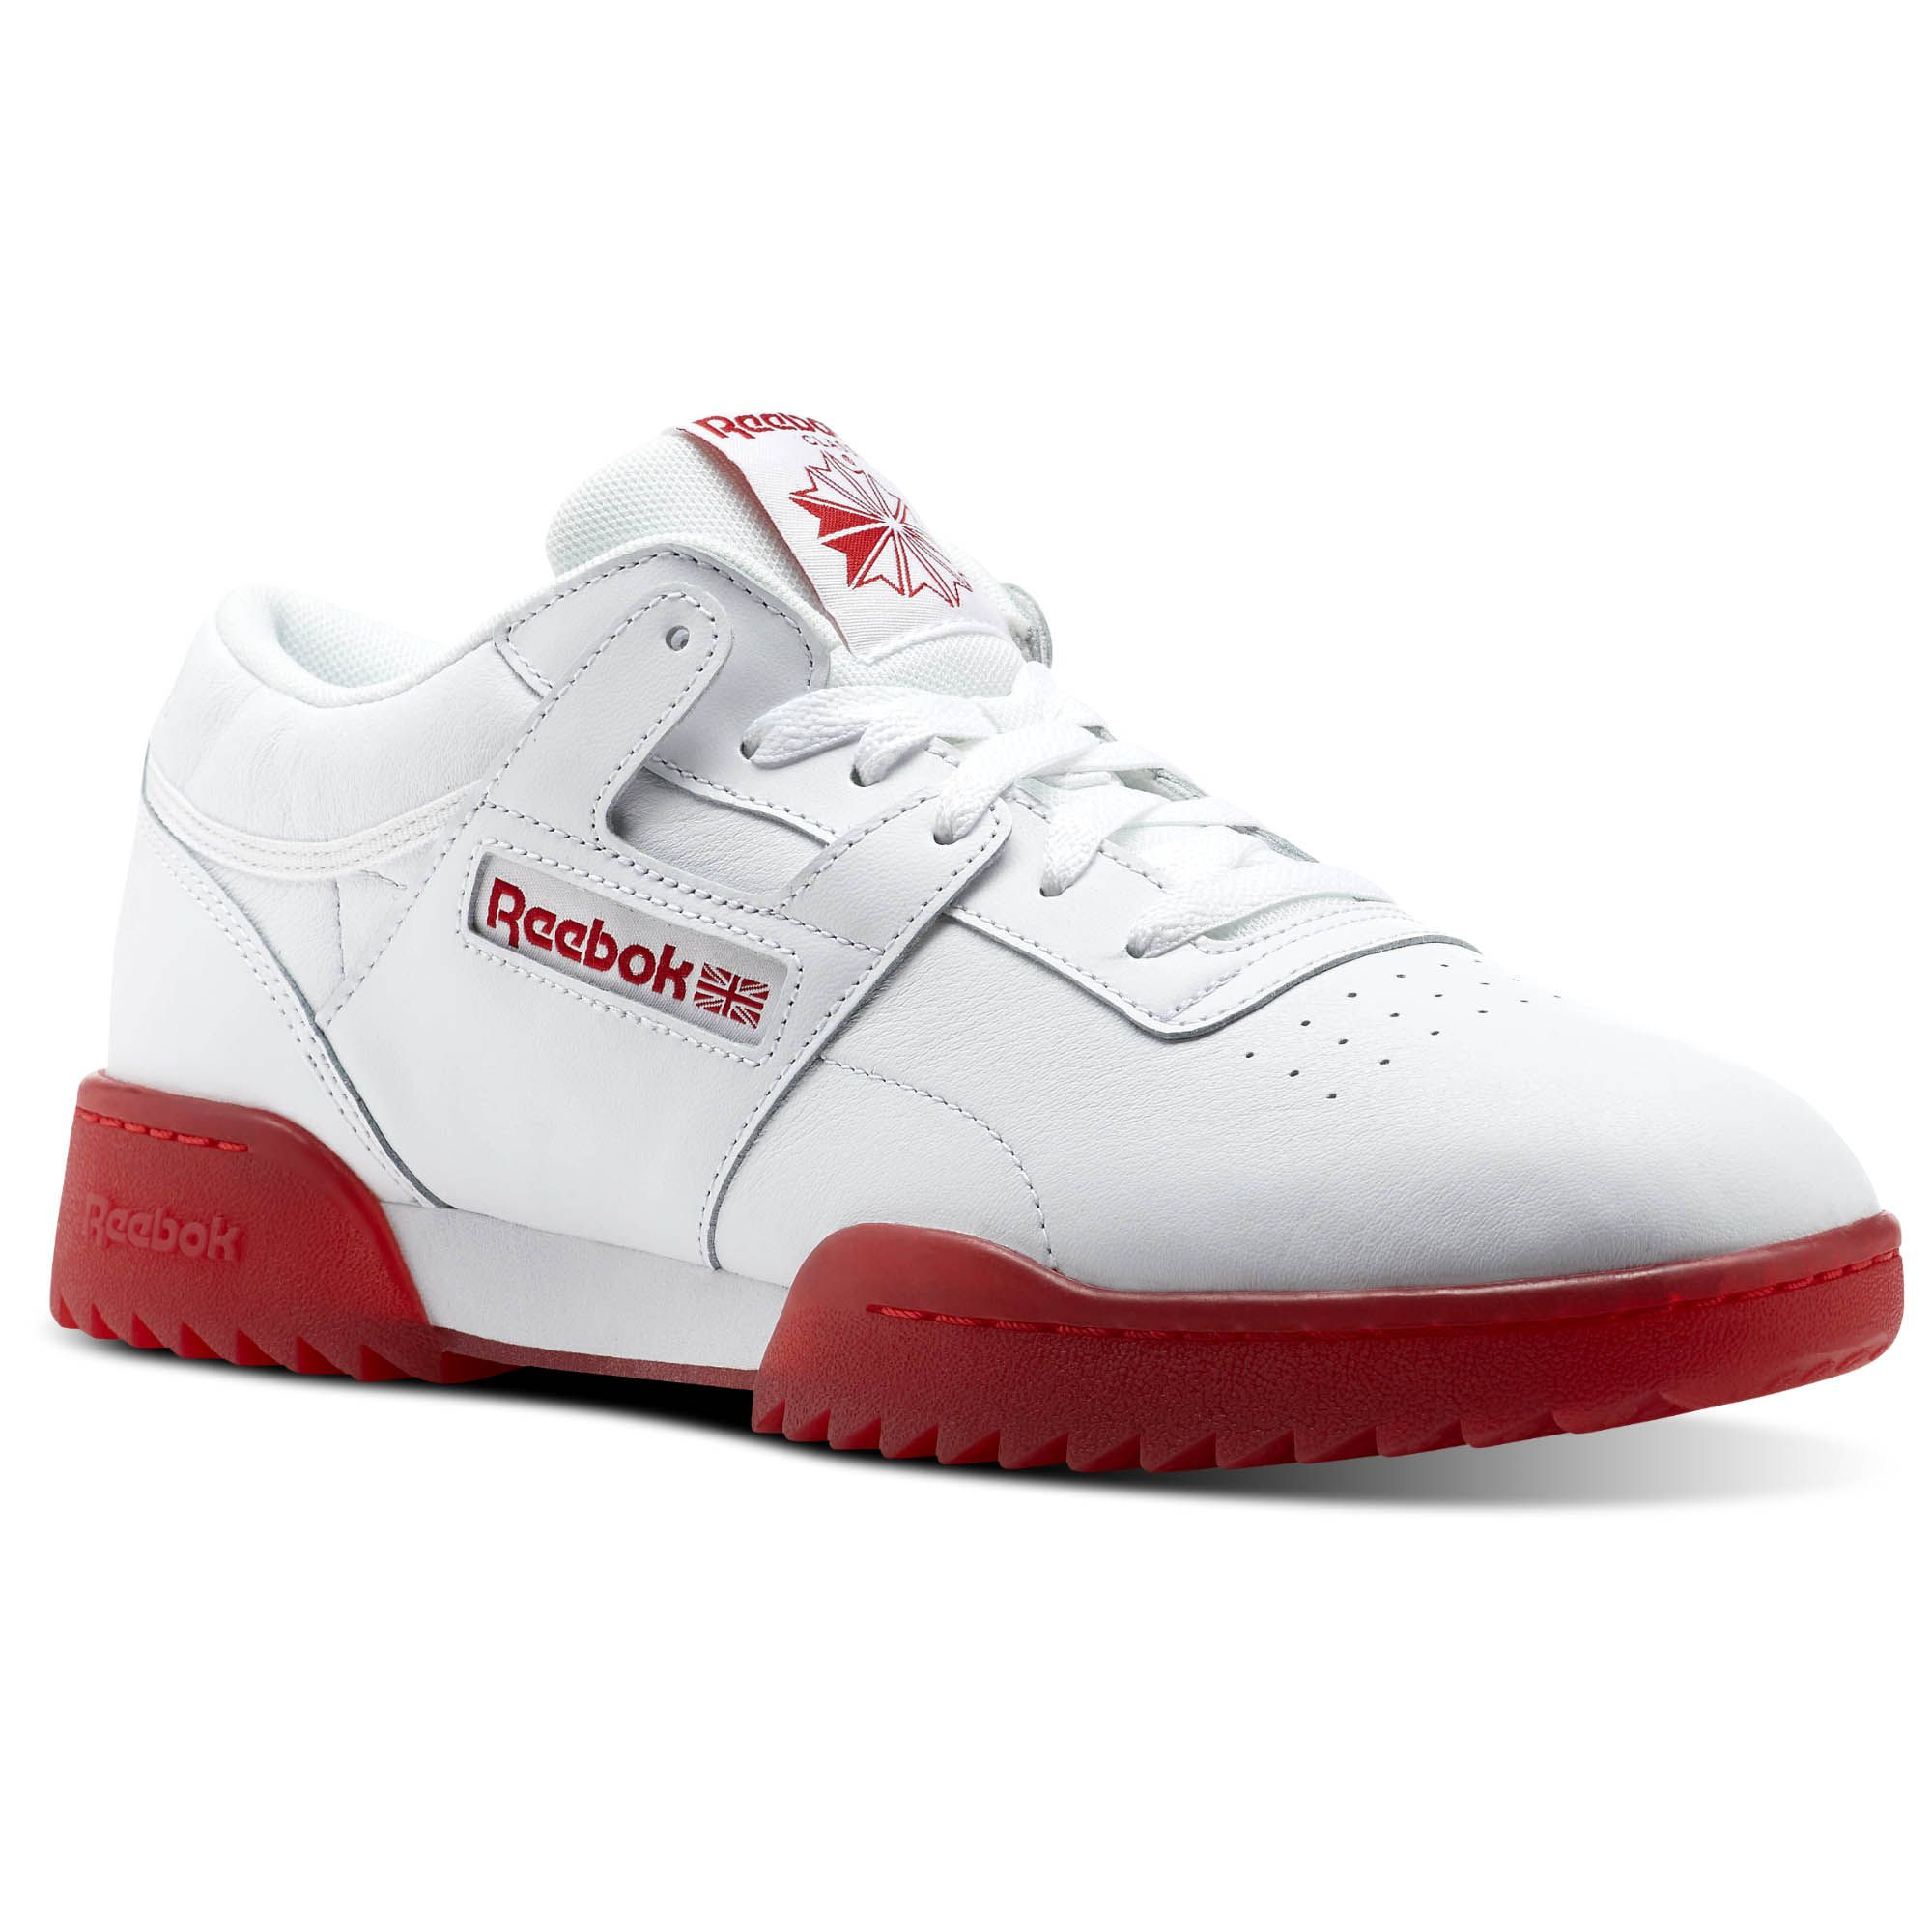 e50b4d6d6b0c9 Shop for Workout Clean Ripple Ice - White at reebok.co.uk! See all ...